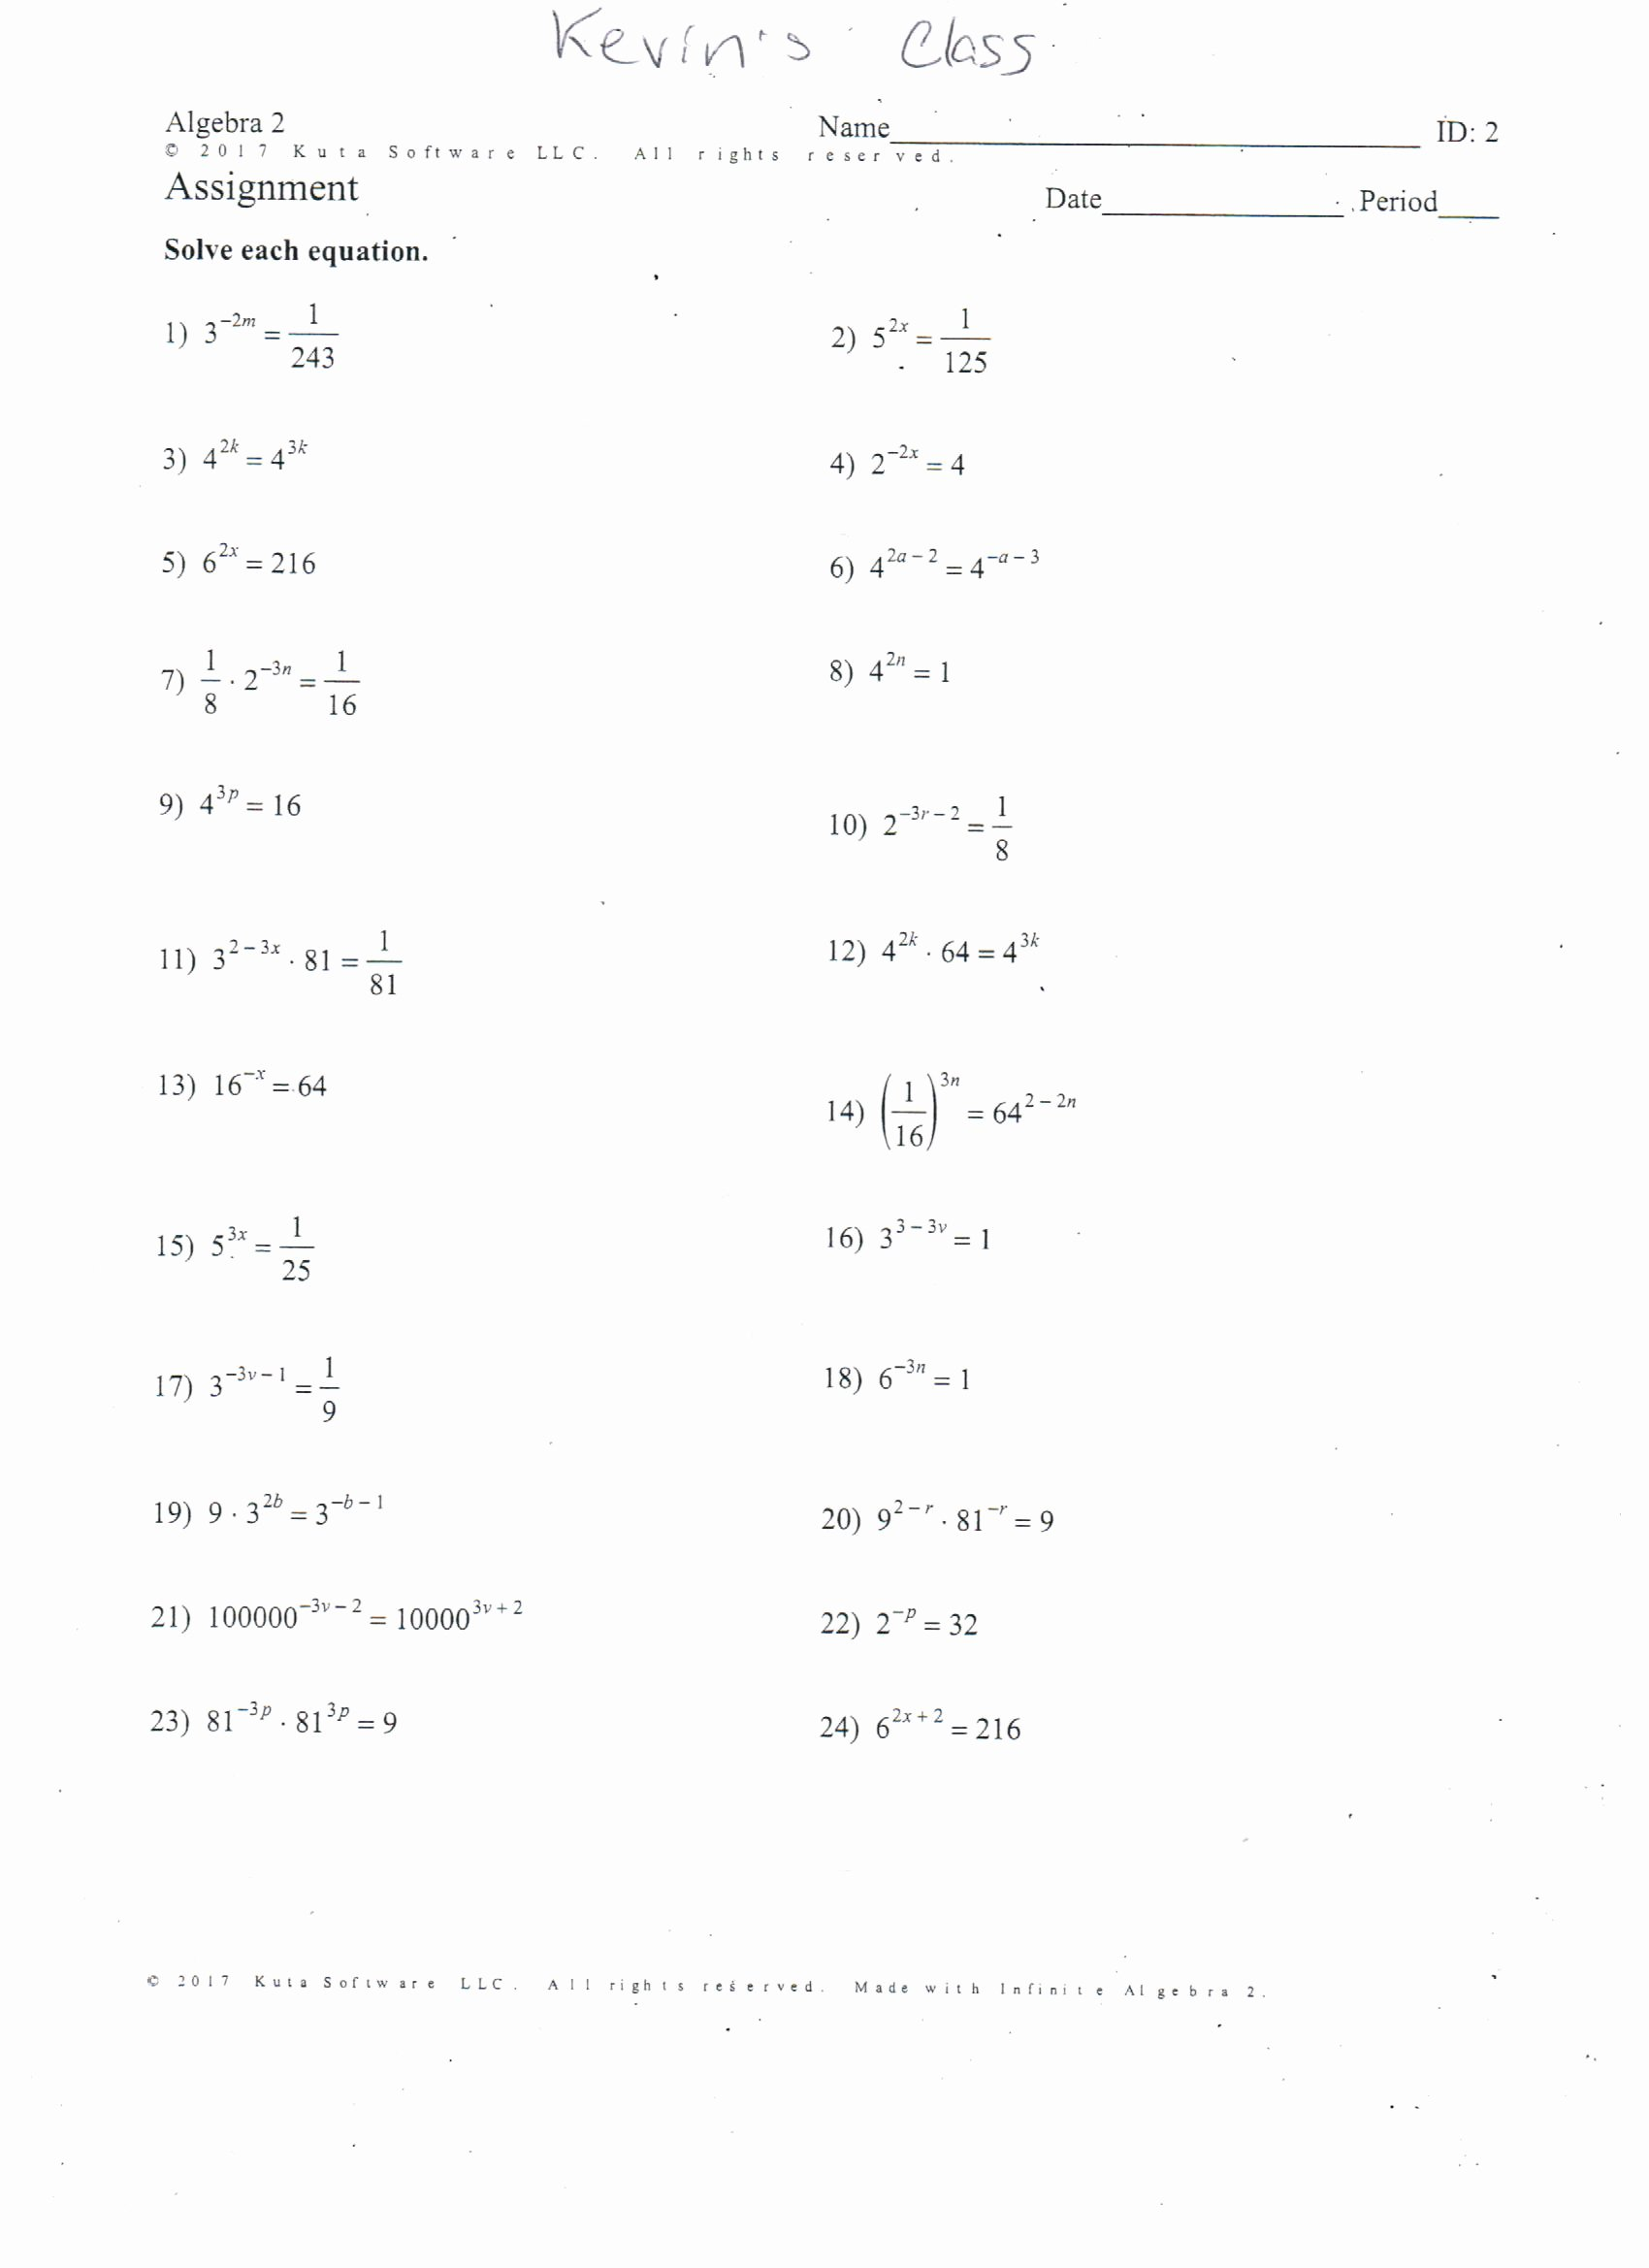 Quadratic Equation Worksheet with Answers Lovely solving Quadratic Equations by Factoring Worksheet Answers